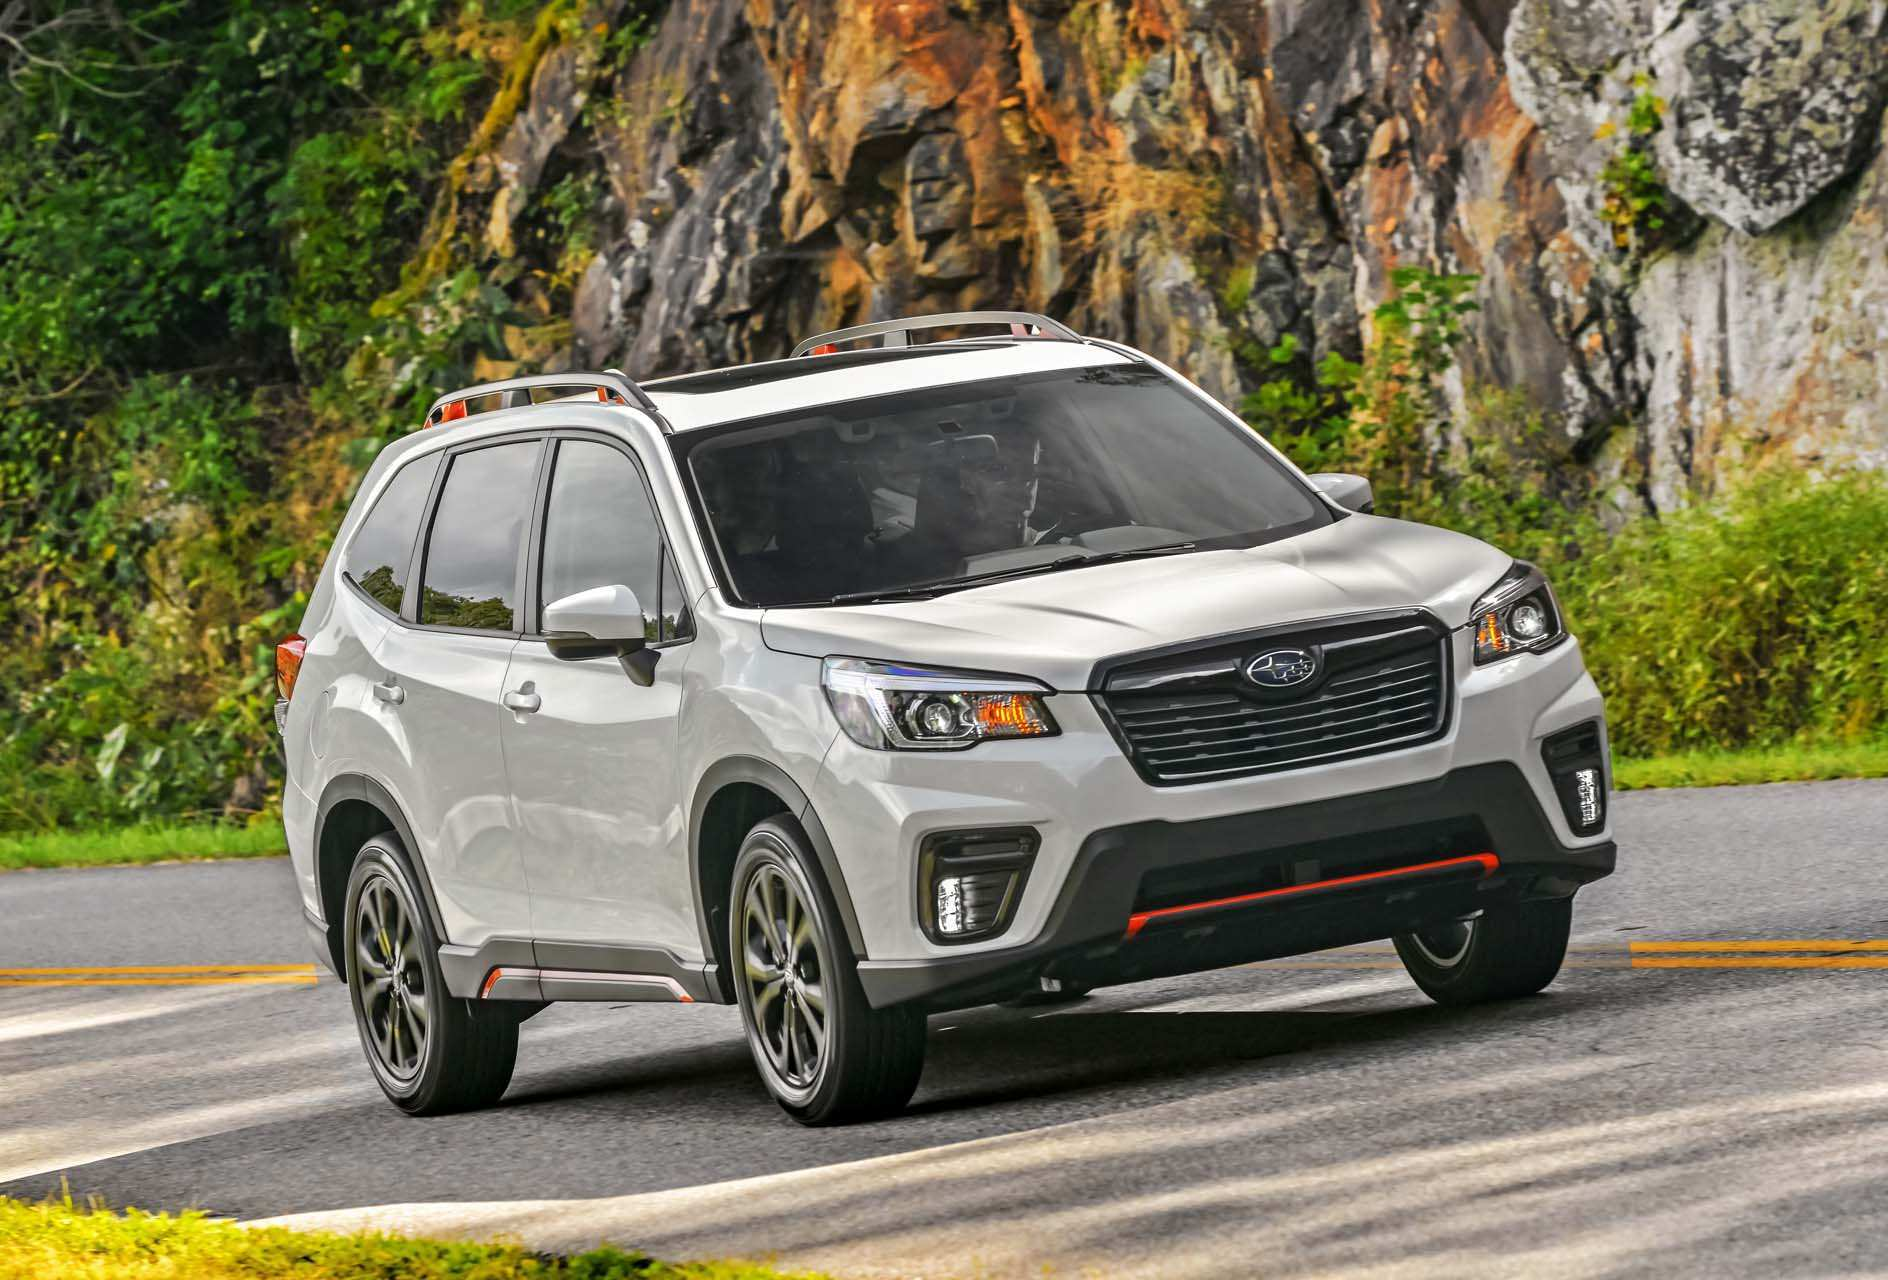 81 New The 2019 Subaru Forester Vs Jeep Cherokee Review Price with The 2019 Subaru Forester Vs Jeep Cherokee Review